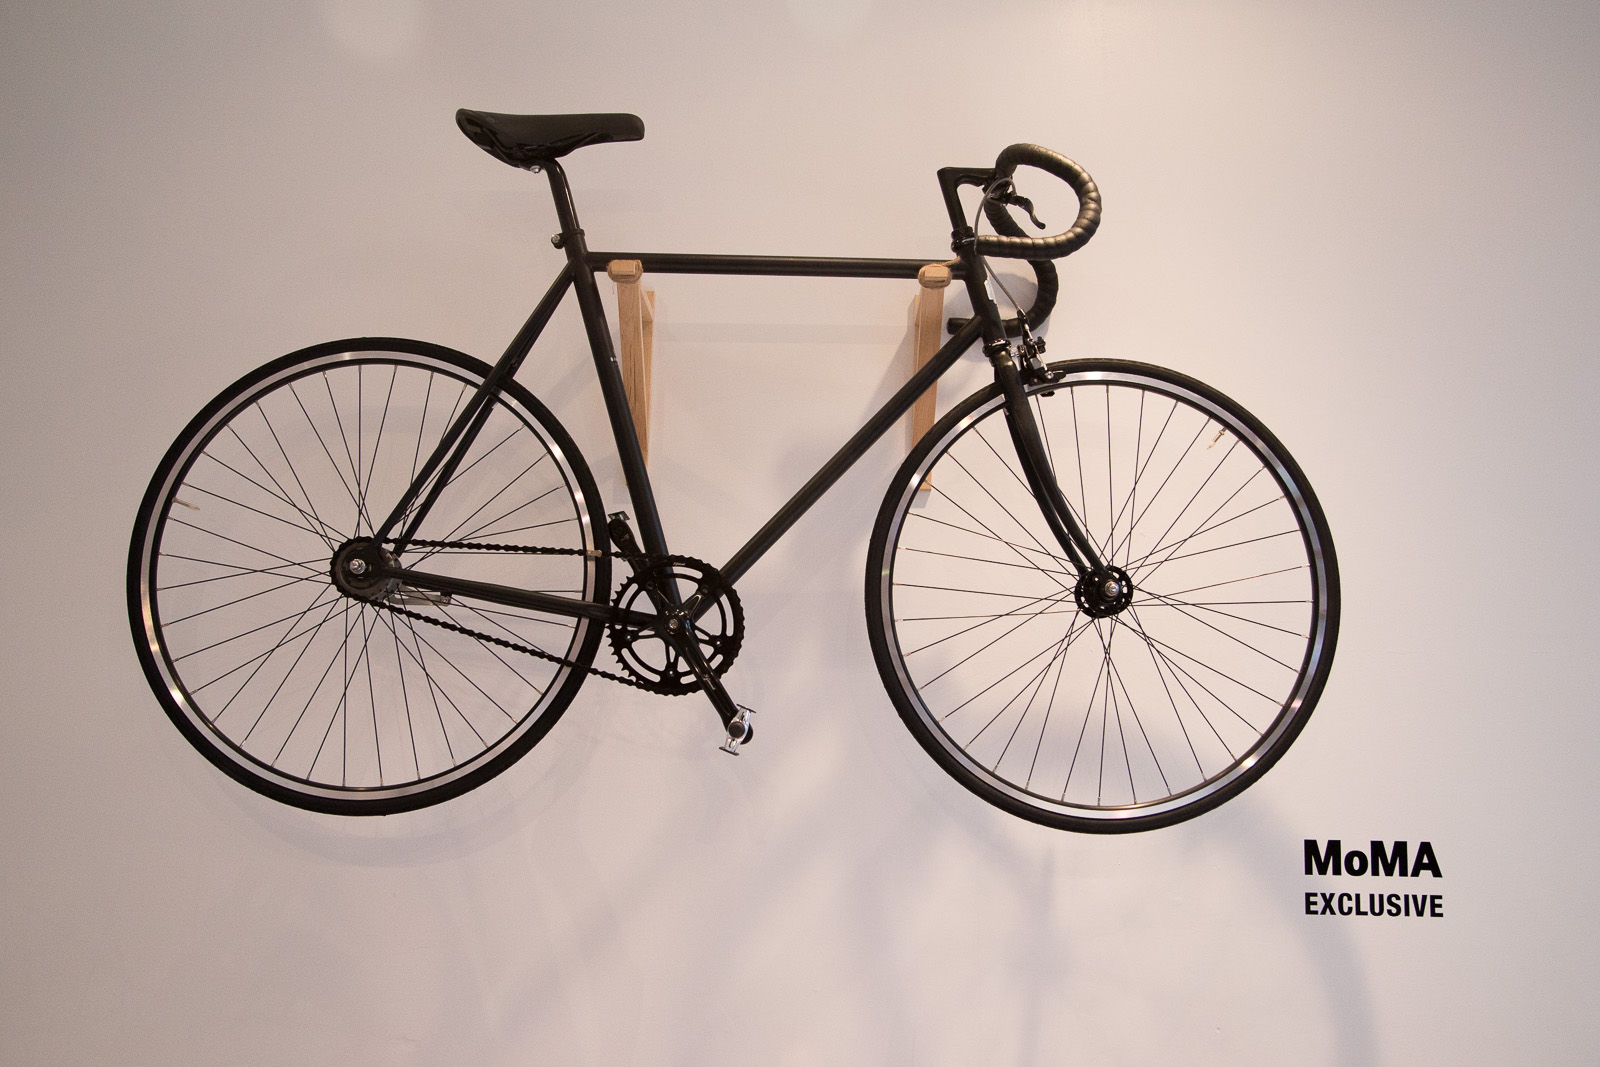 BIKEID Svart available at the MoMA Store.